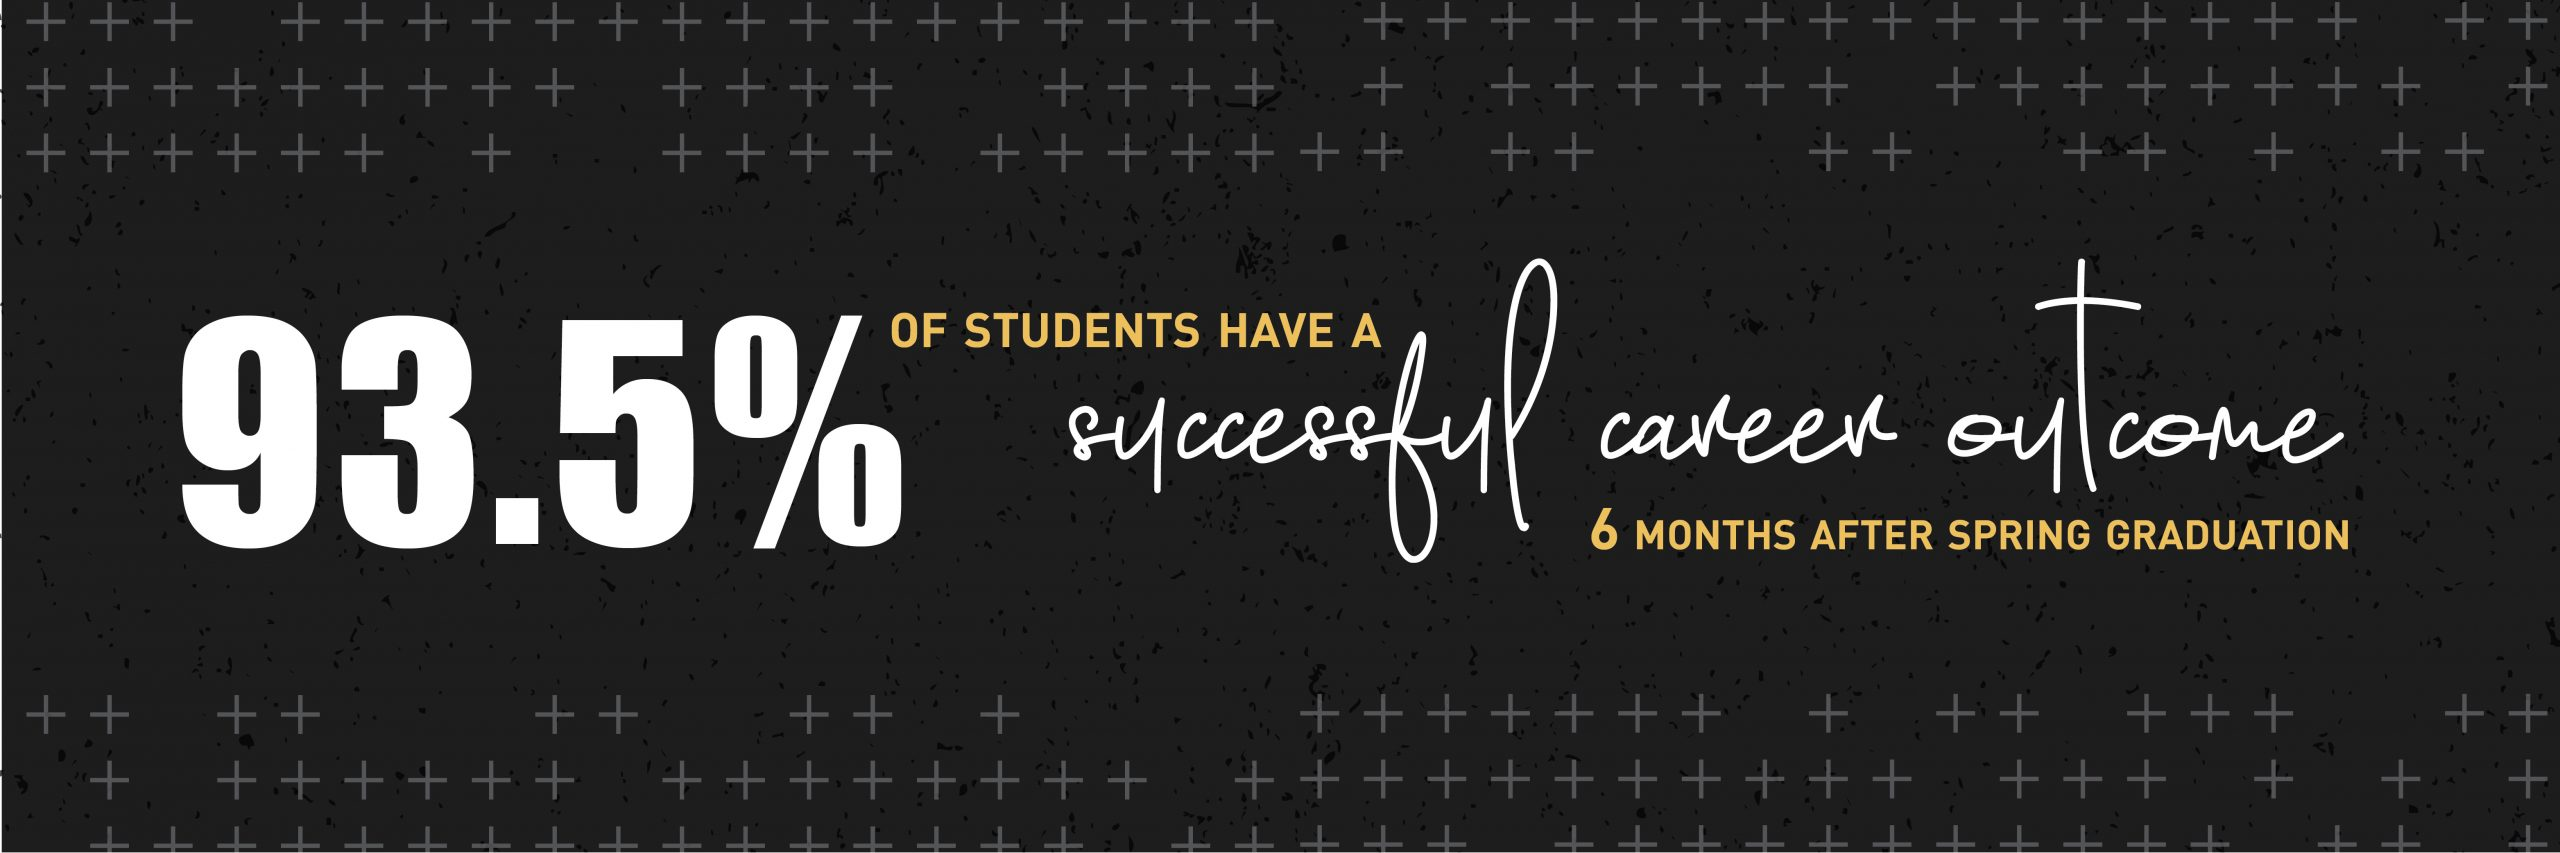 93.5% of students have a successful career outcome, 6 months after spring graduation